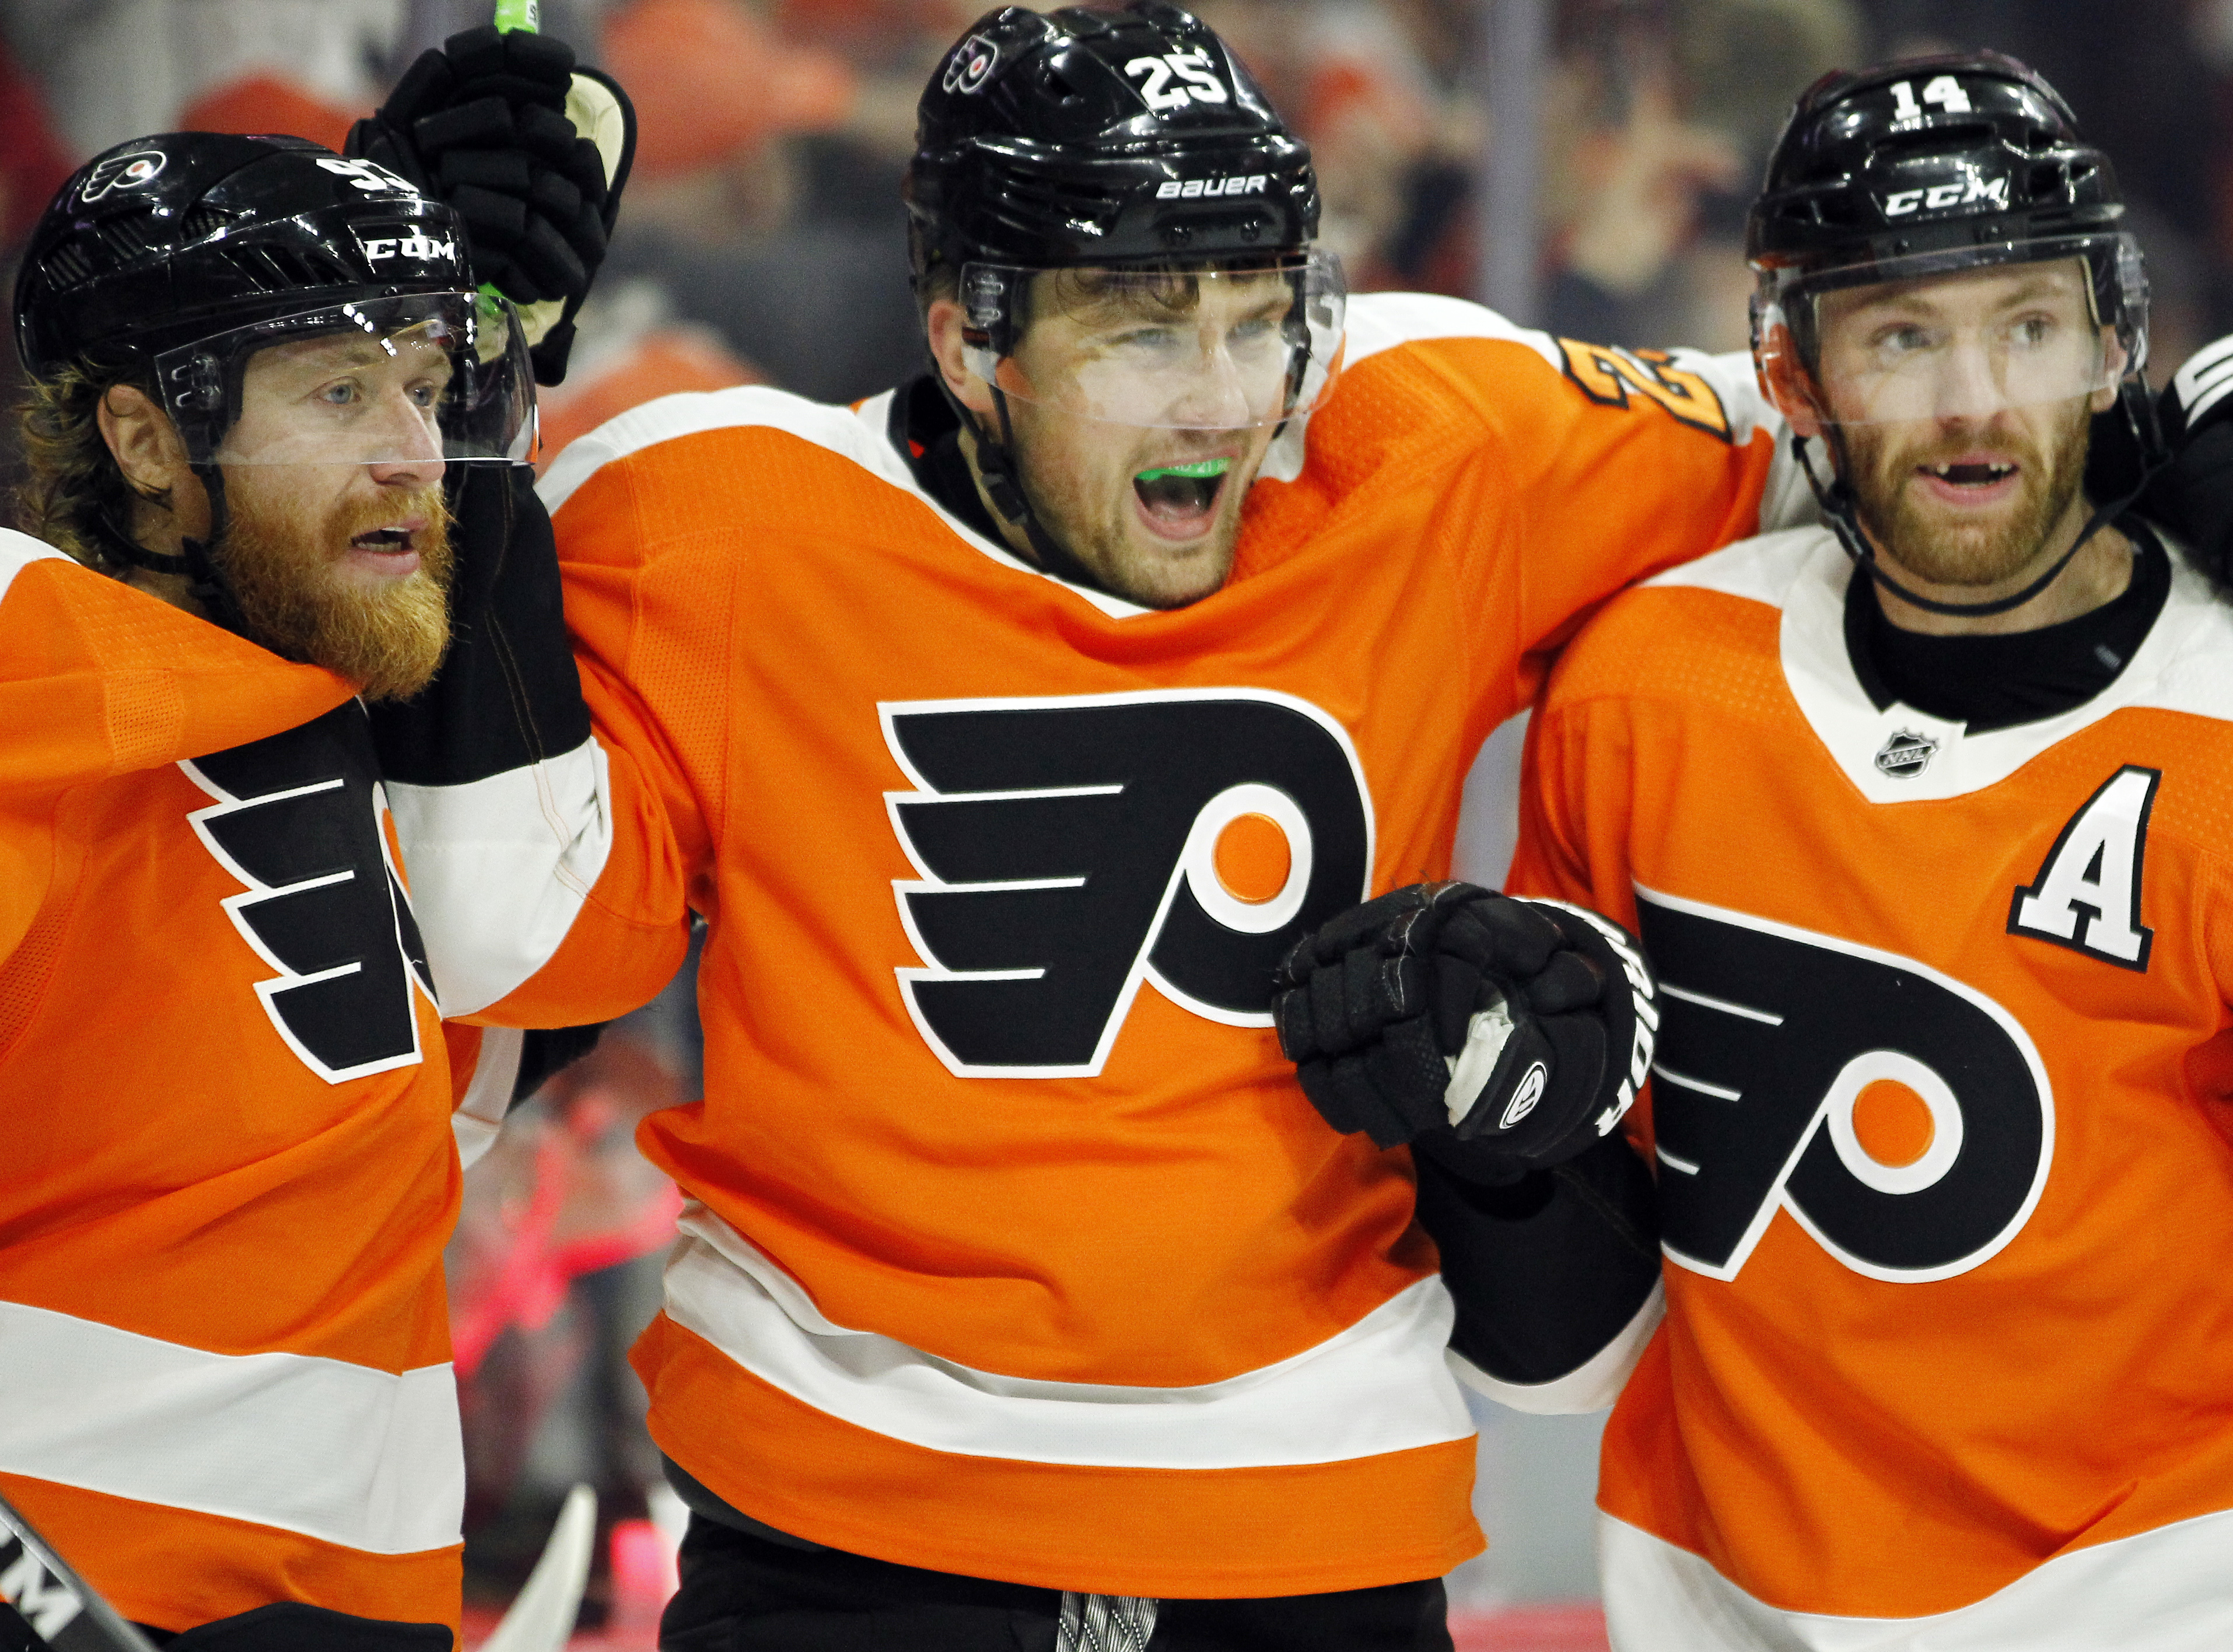 James van Riemsdyk, center, celebrating his goal Saturday with teammates Jake Voracek, left, and Sean Couturier.